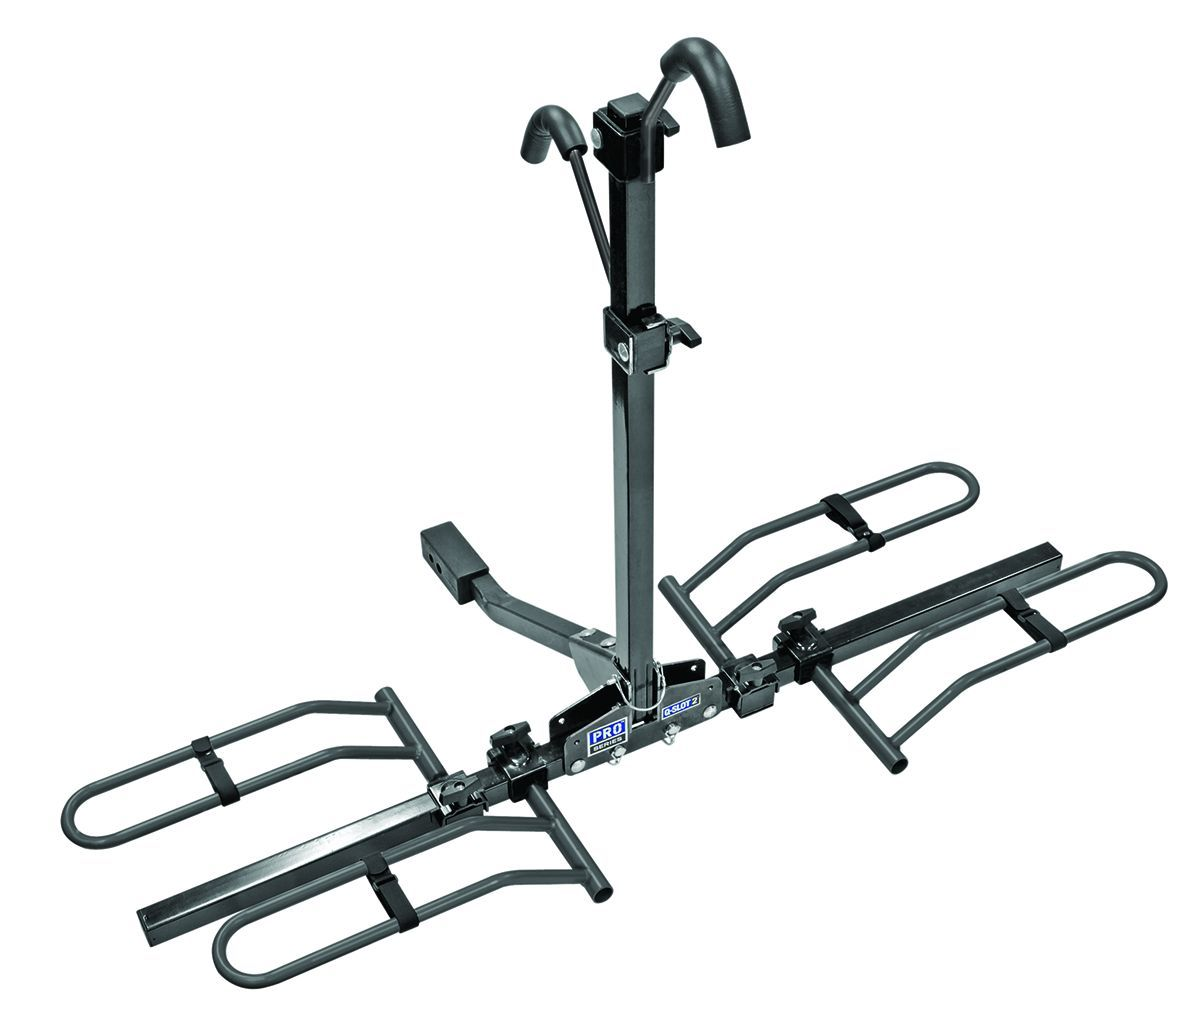 63134 Pro Series Hitch Bike Rack - Receiver Hitch Mount 1-1/4 Inch